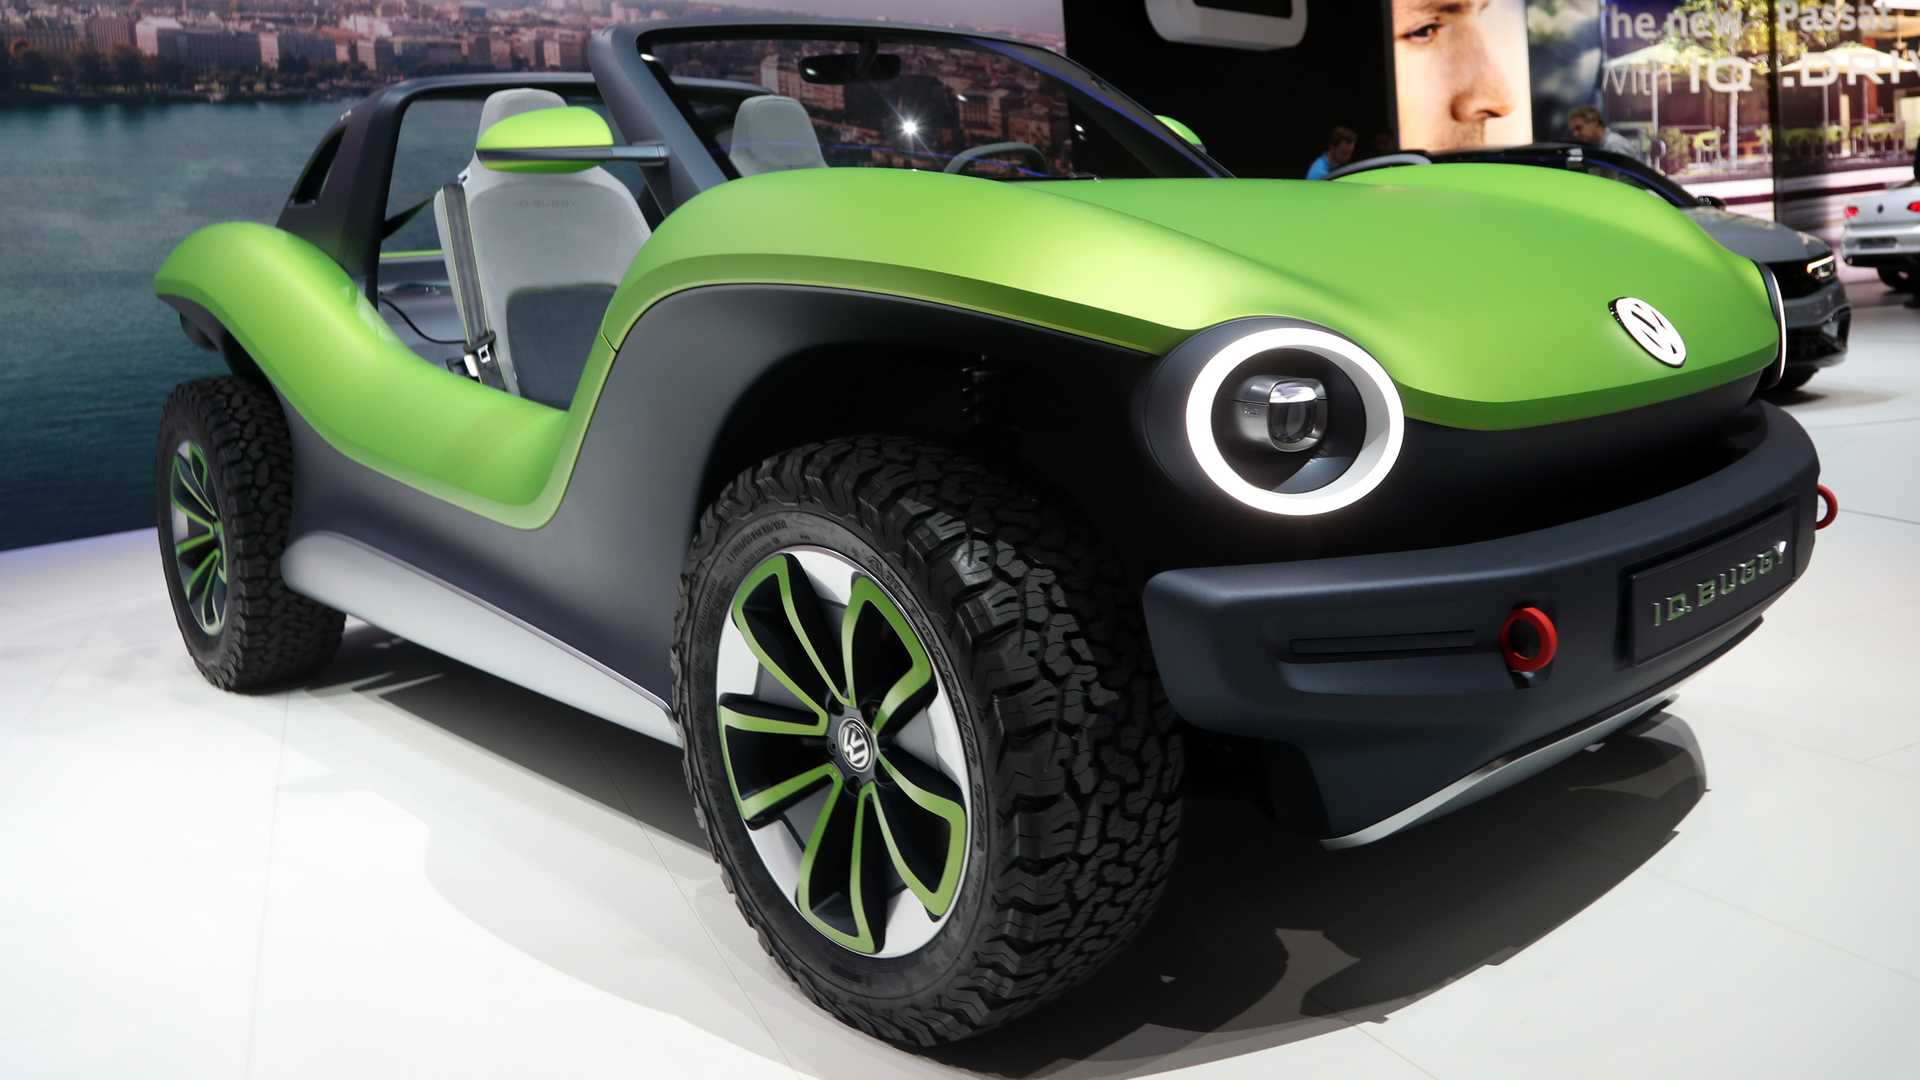 Travel Buggy With Sunroof Volkswagen I D Buggy Concept Shows Its Groovy Style In Geneva